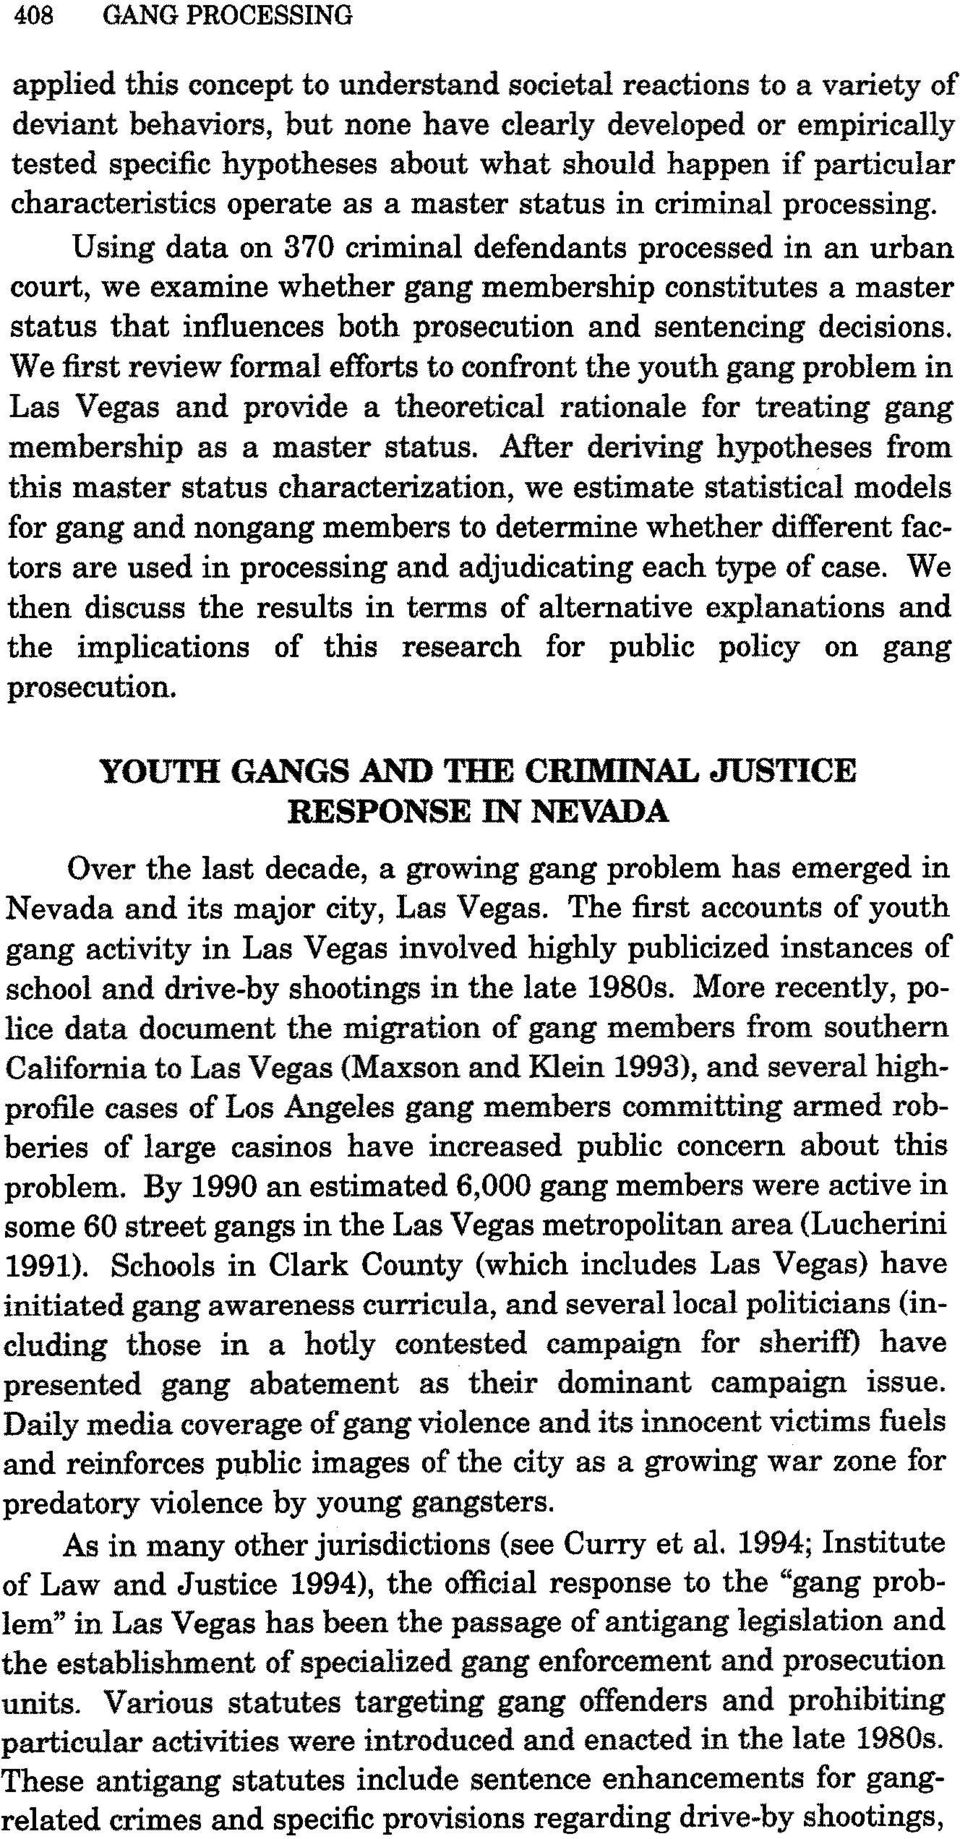 Using data on 370 criminal defendants processed in an urban court, we examine whether gang membership constitutes a master status that influences both prosecution and sentencing decisions.